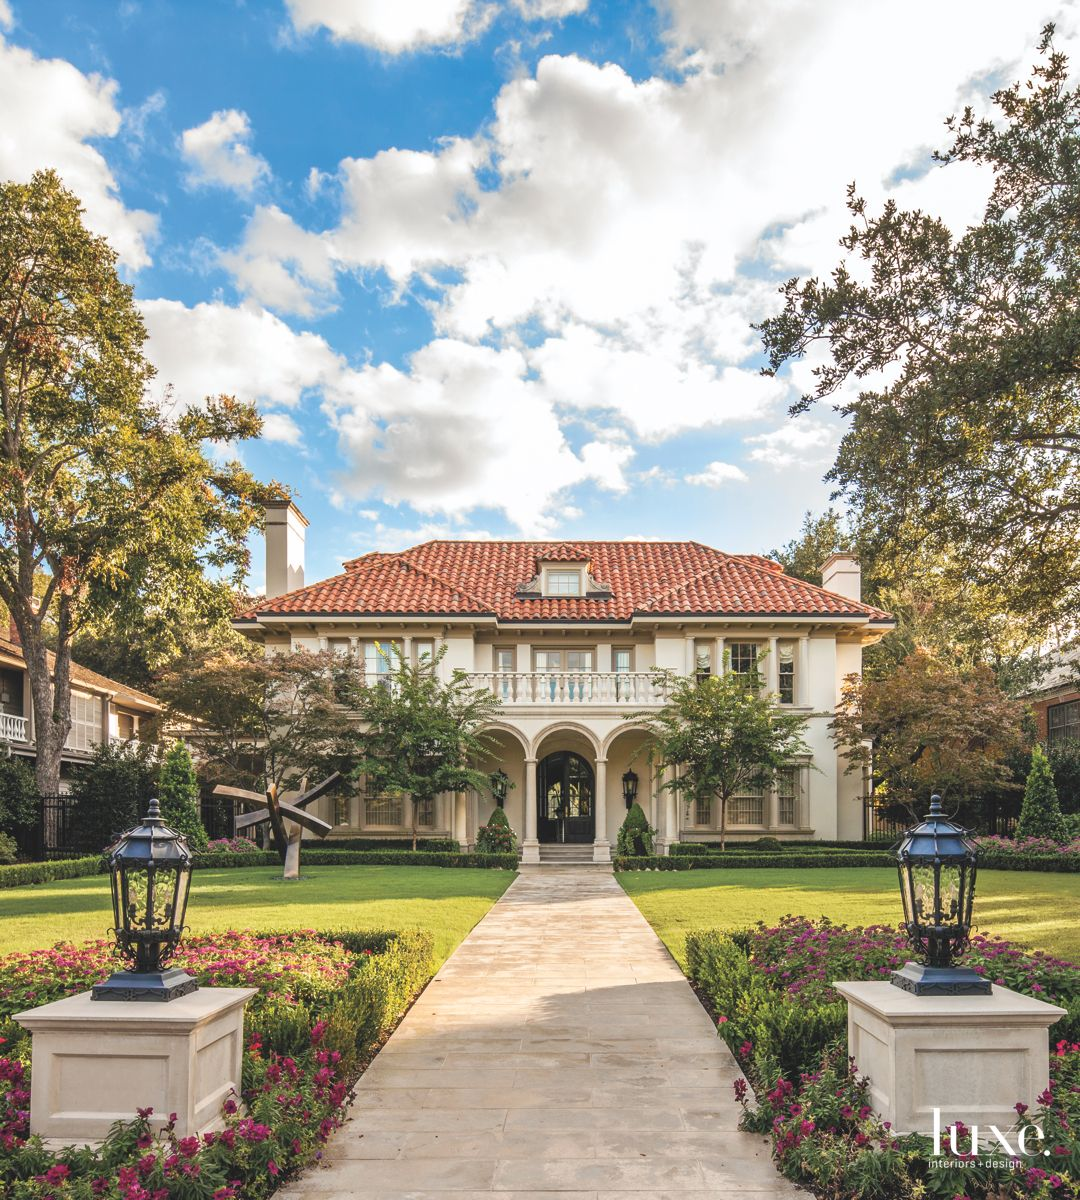 North Dallas Mansion with Sophisticated Plantings and Sculpture